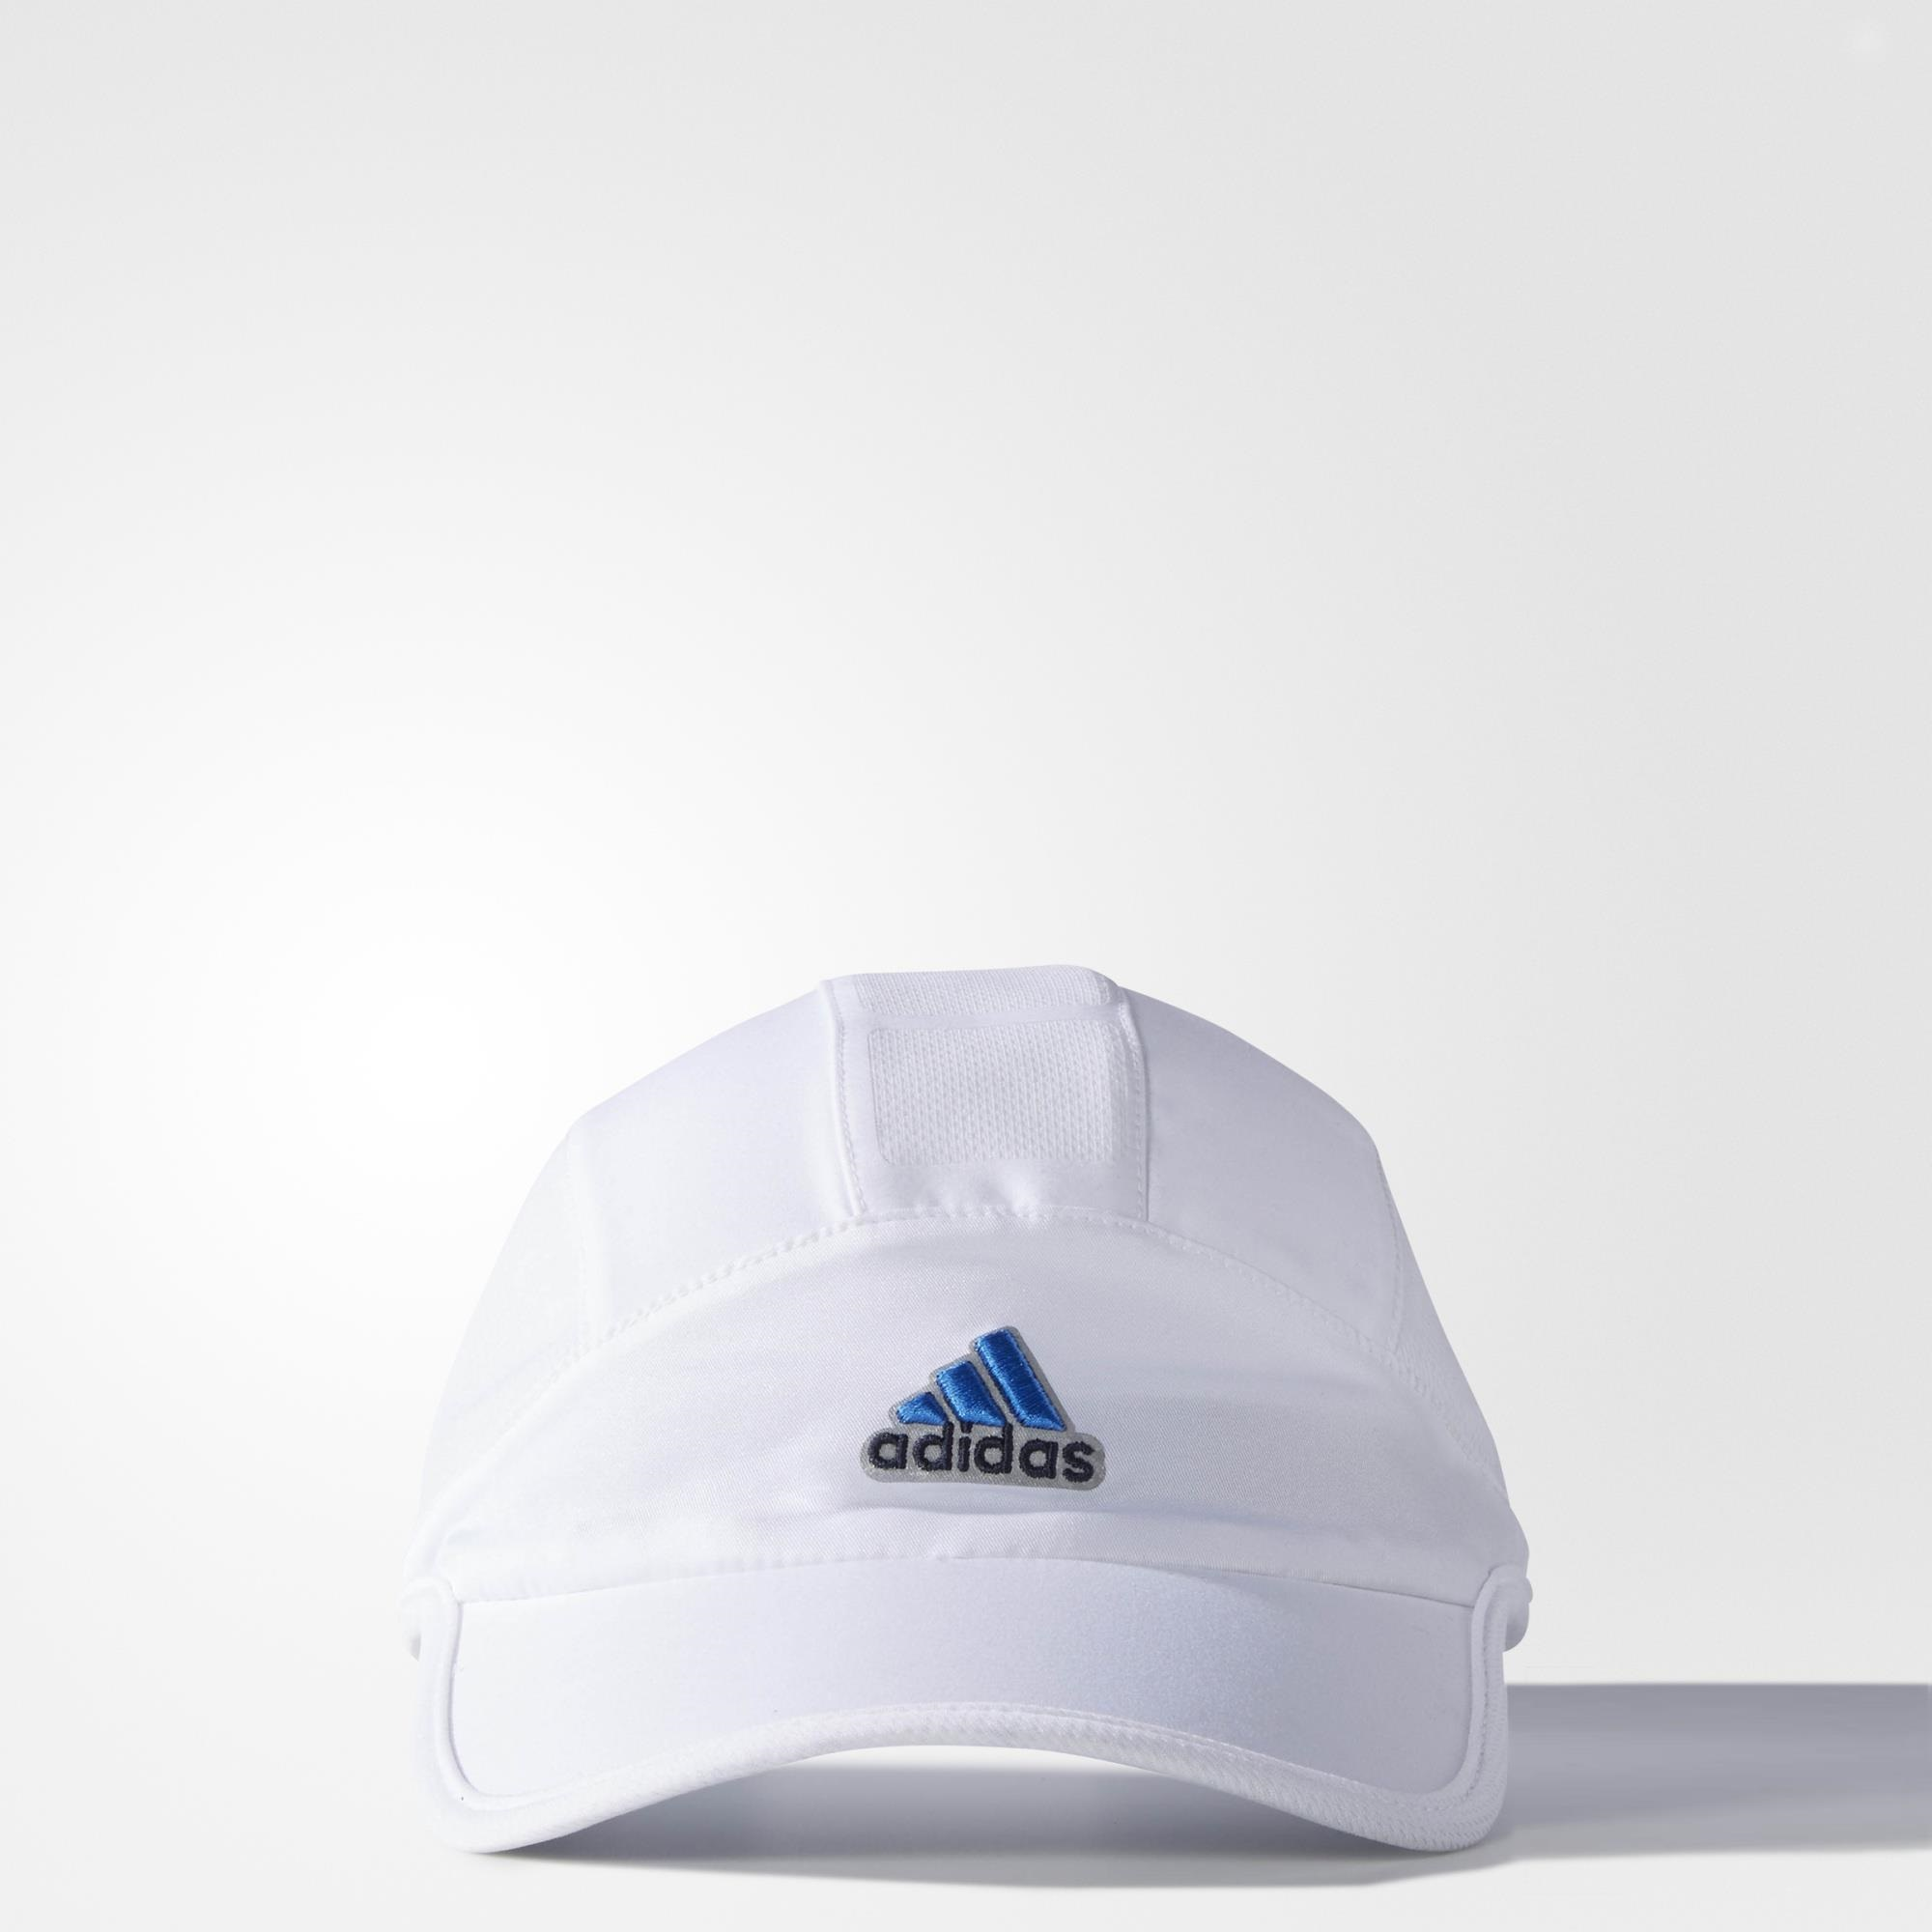 adidas Climacool Trainer Relaxed Hat - WHITE,BROYAL | adidas US